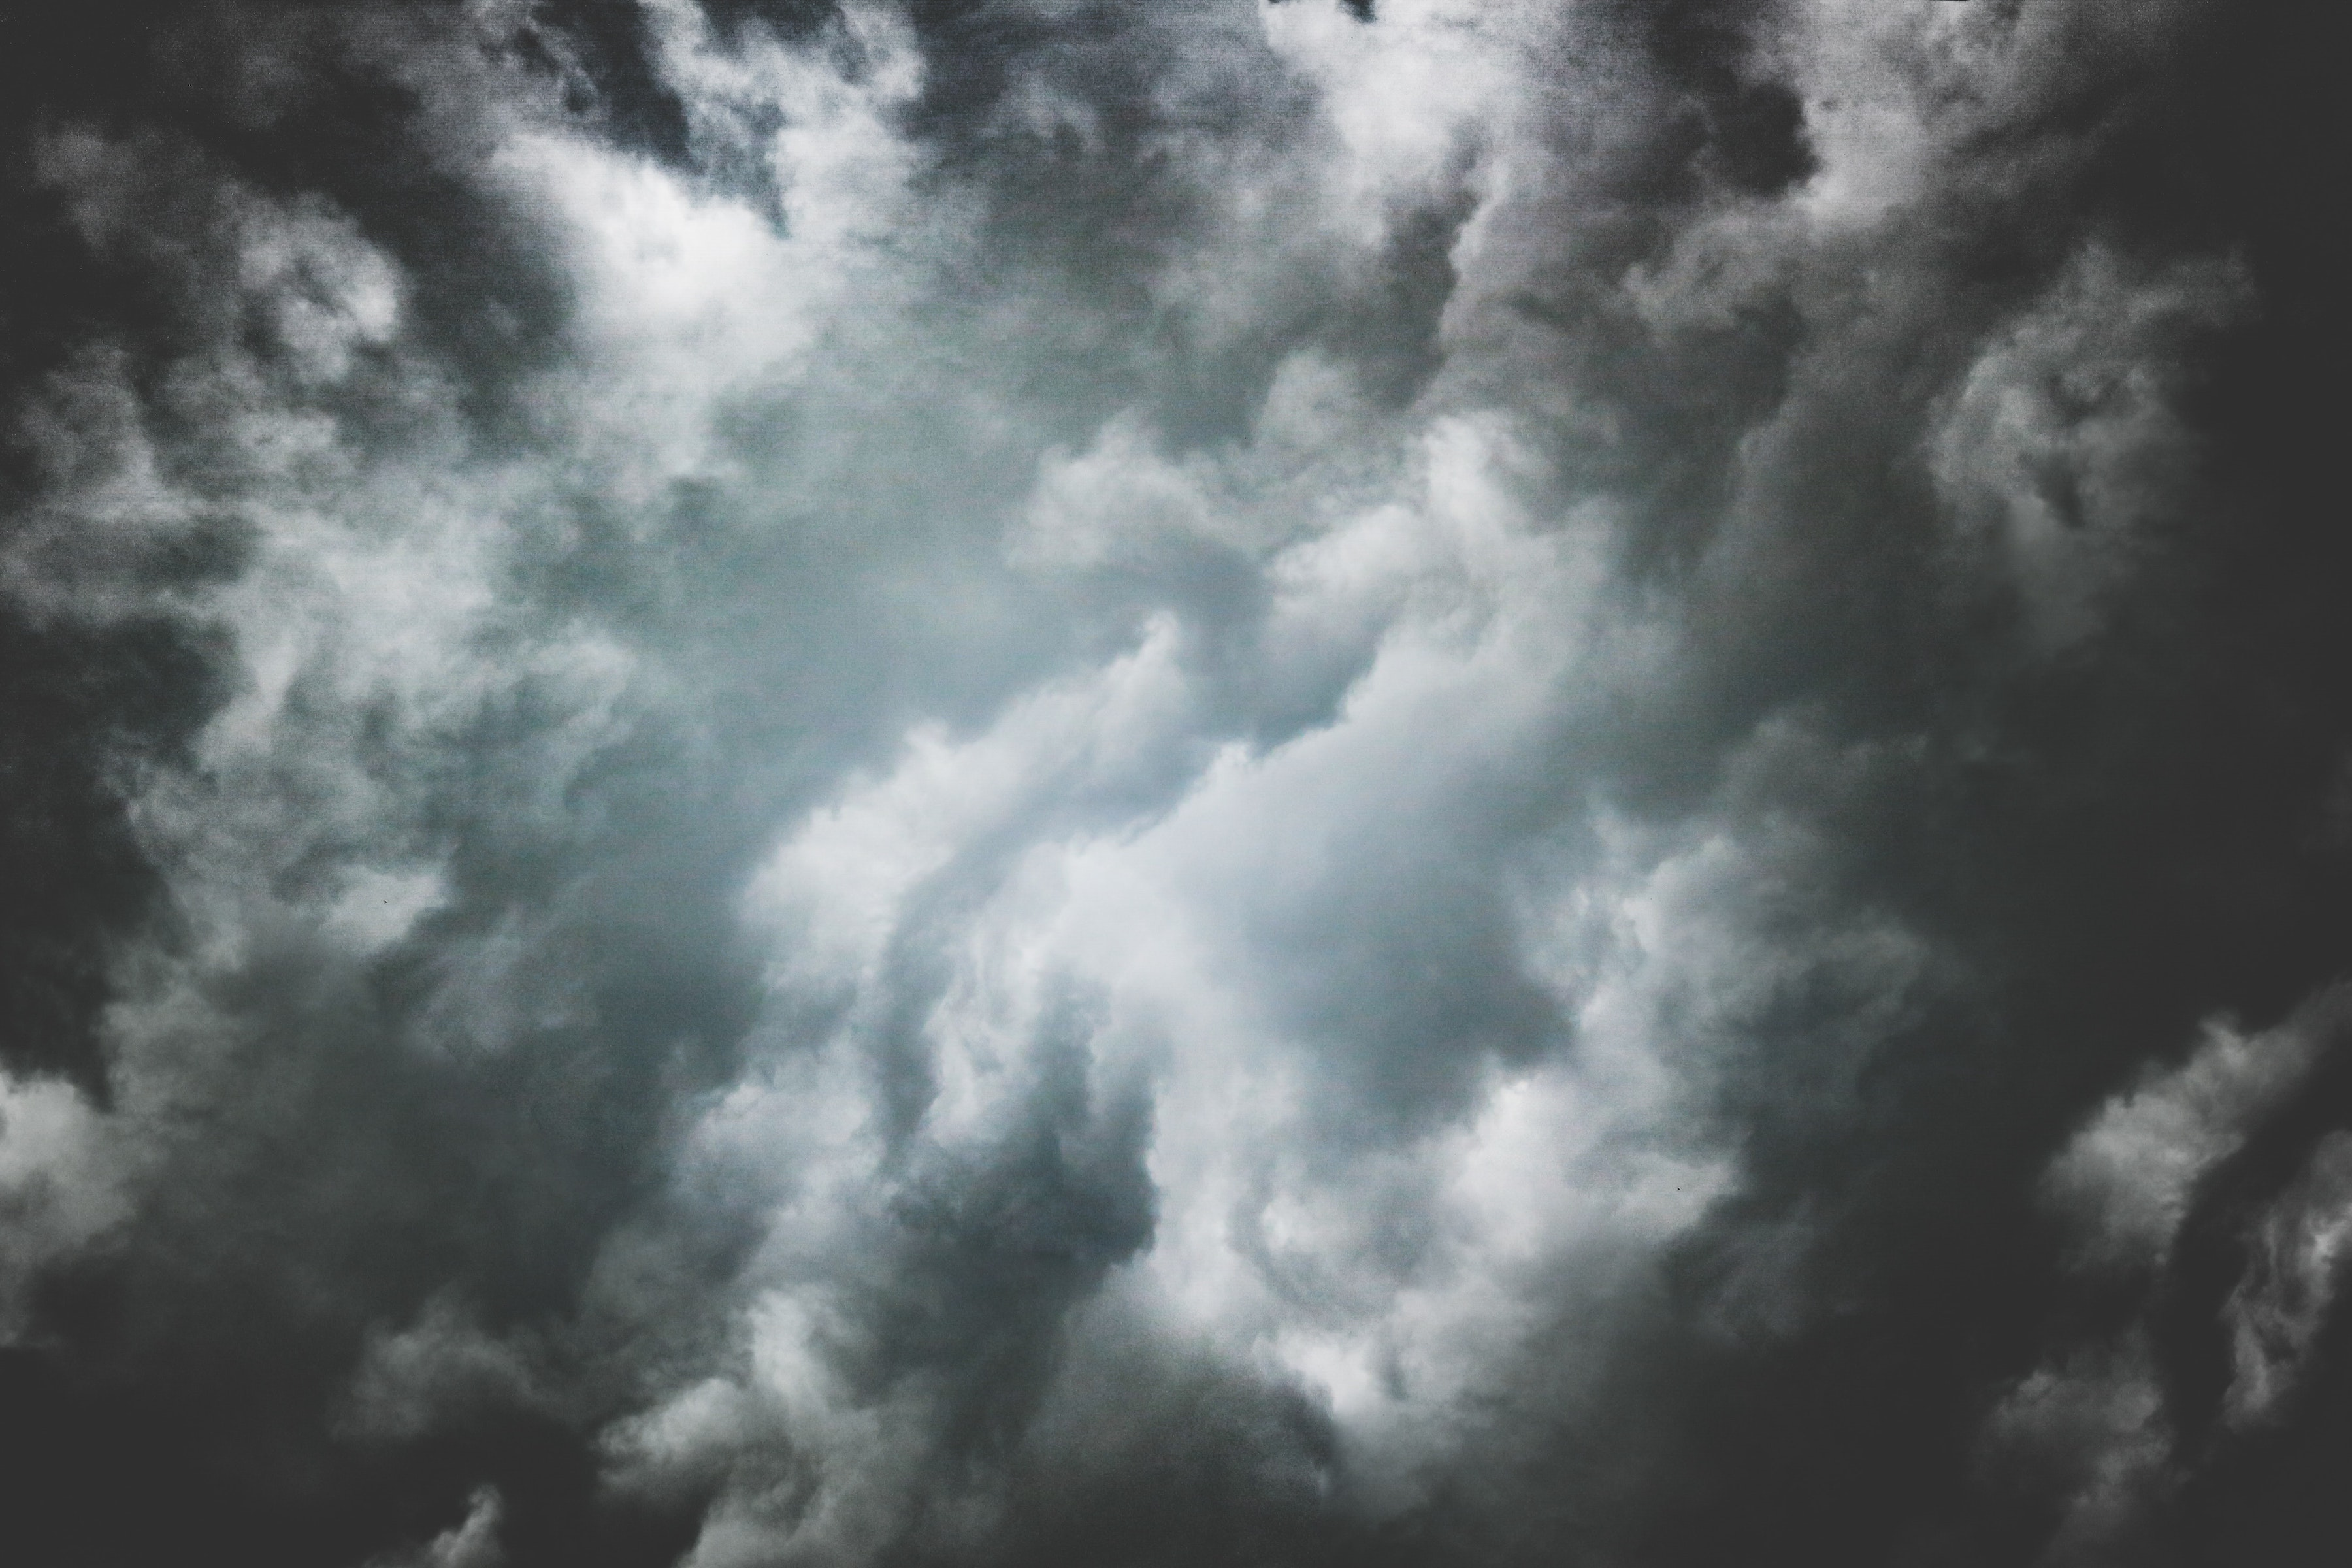 c18c173669a5d System Could Become First Named Storm of Year - Palm Beach Record